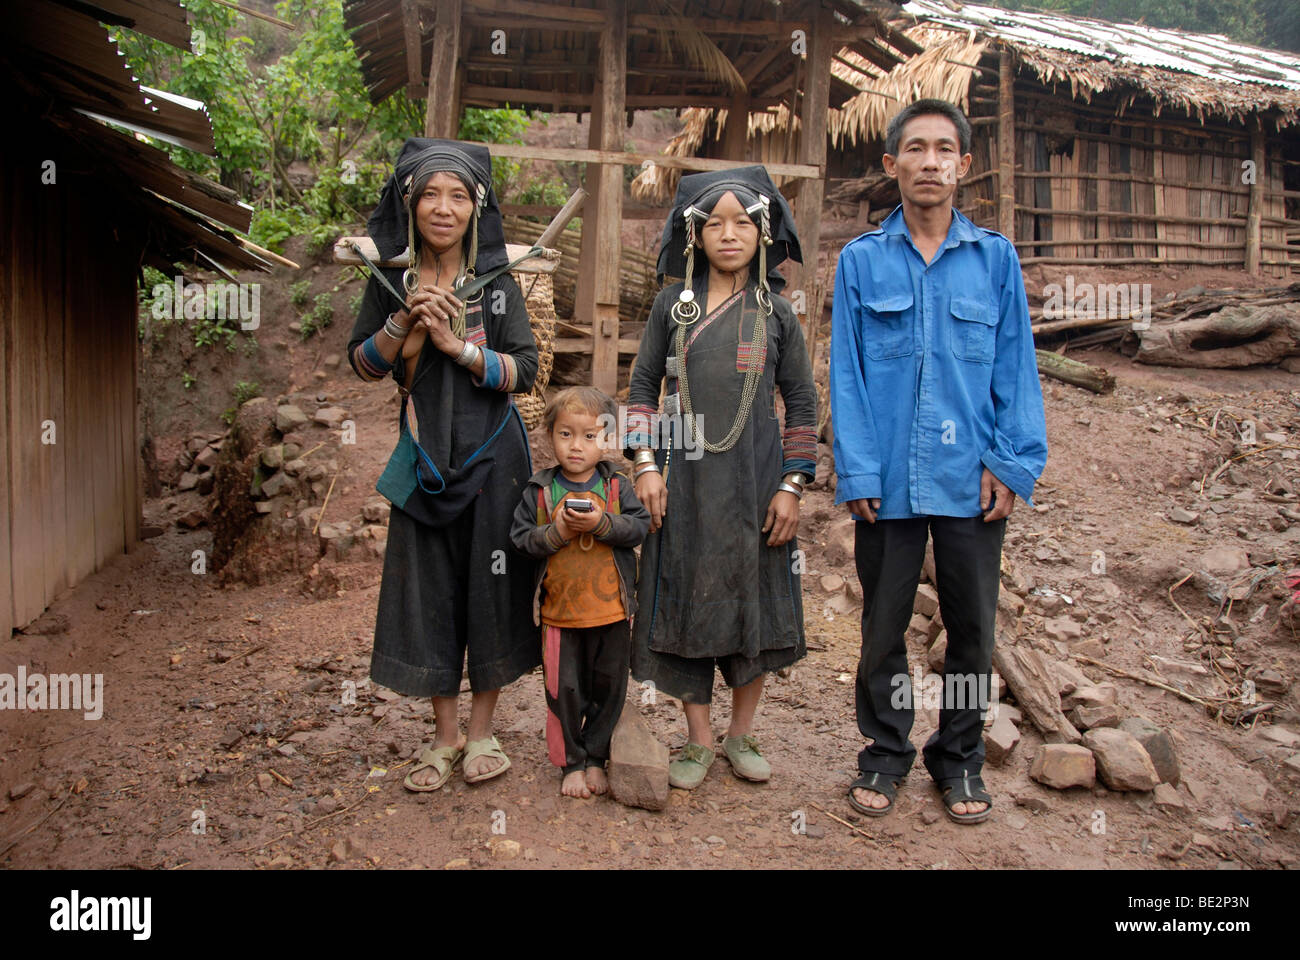 Poverty, portrait, ethnology, family of the Akha Pixor ethnic group in traditional dress, women, man, child, village - Stock Image